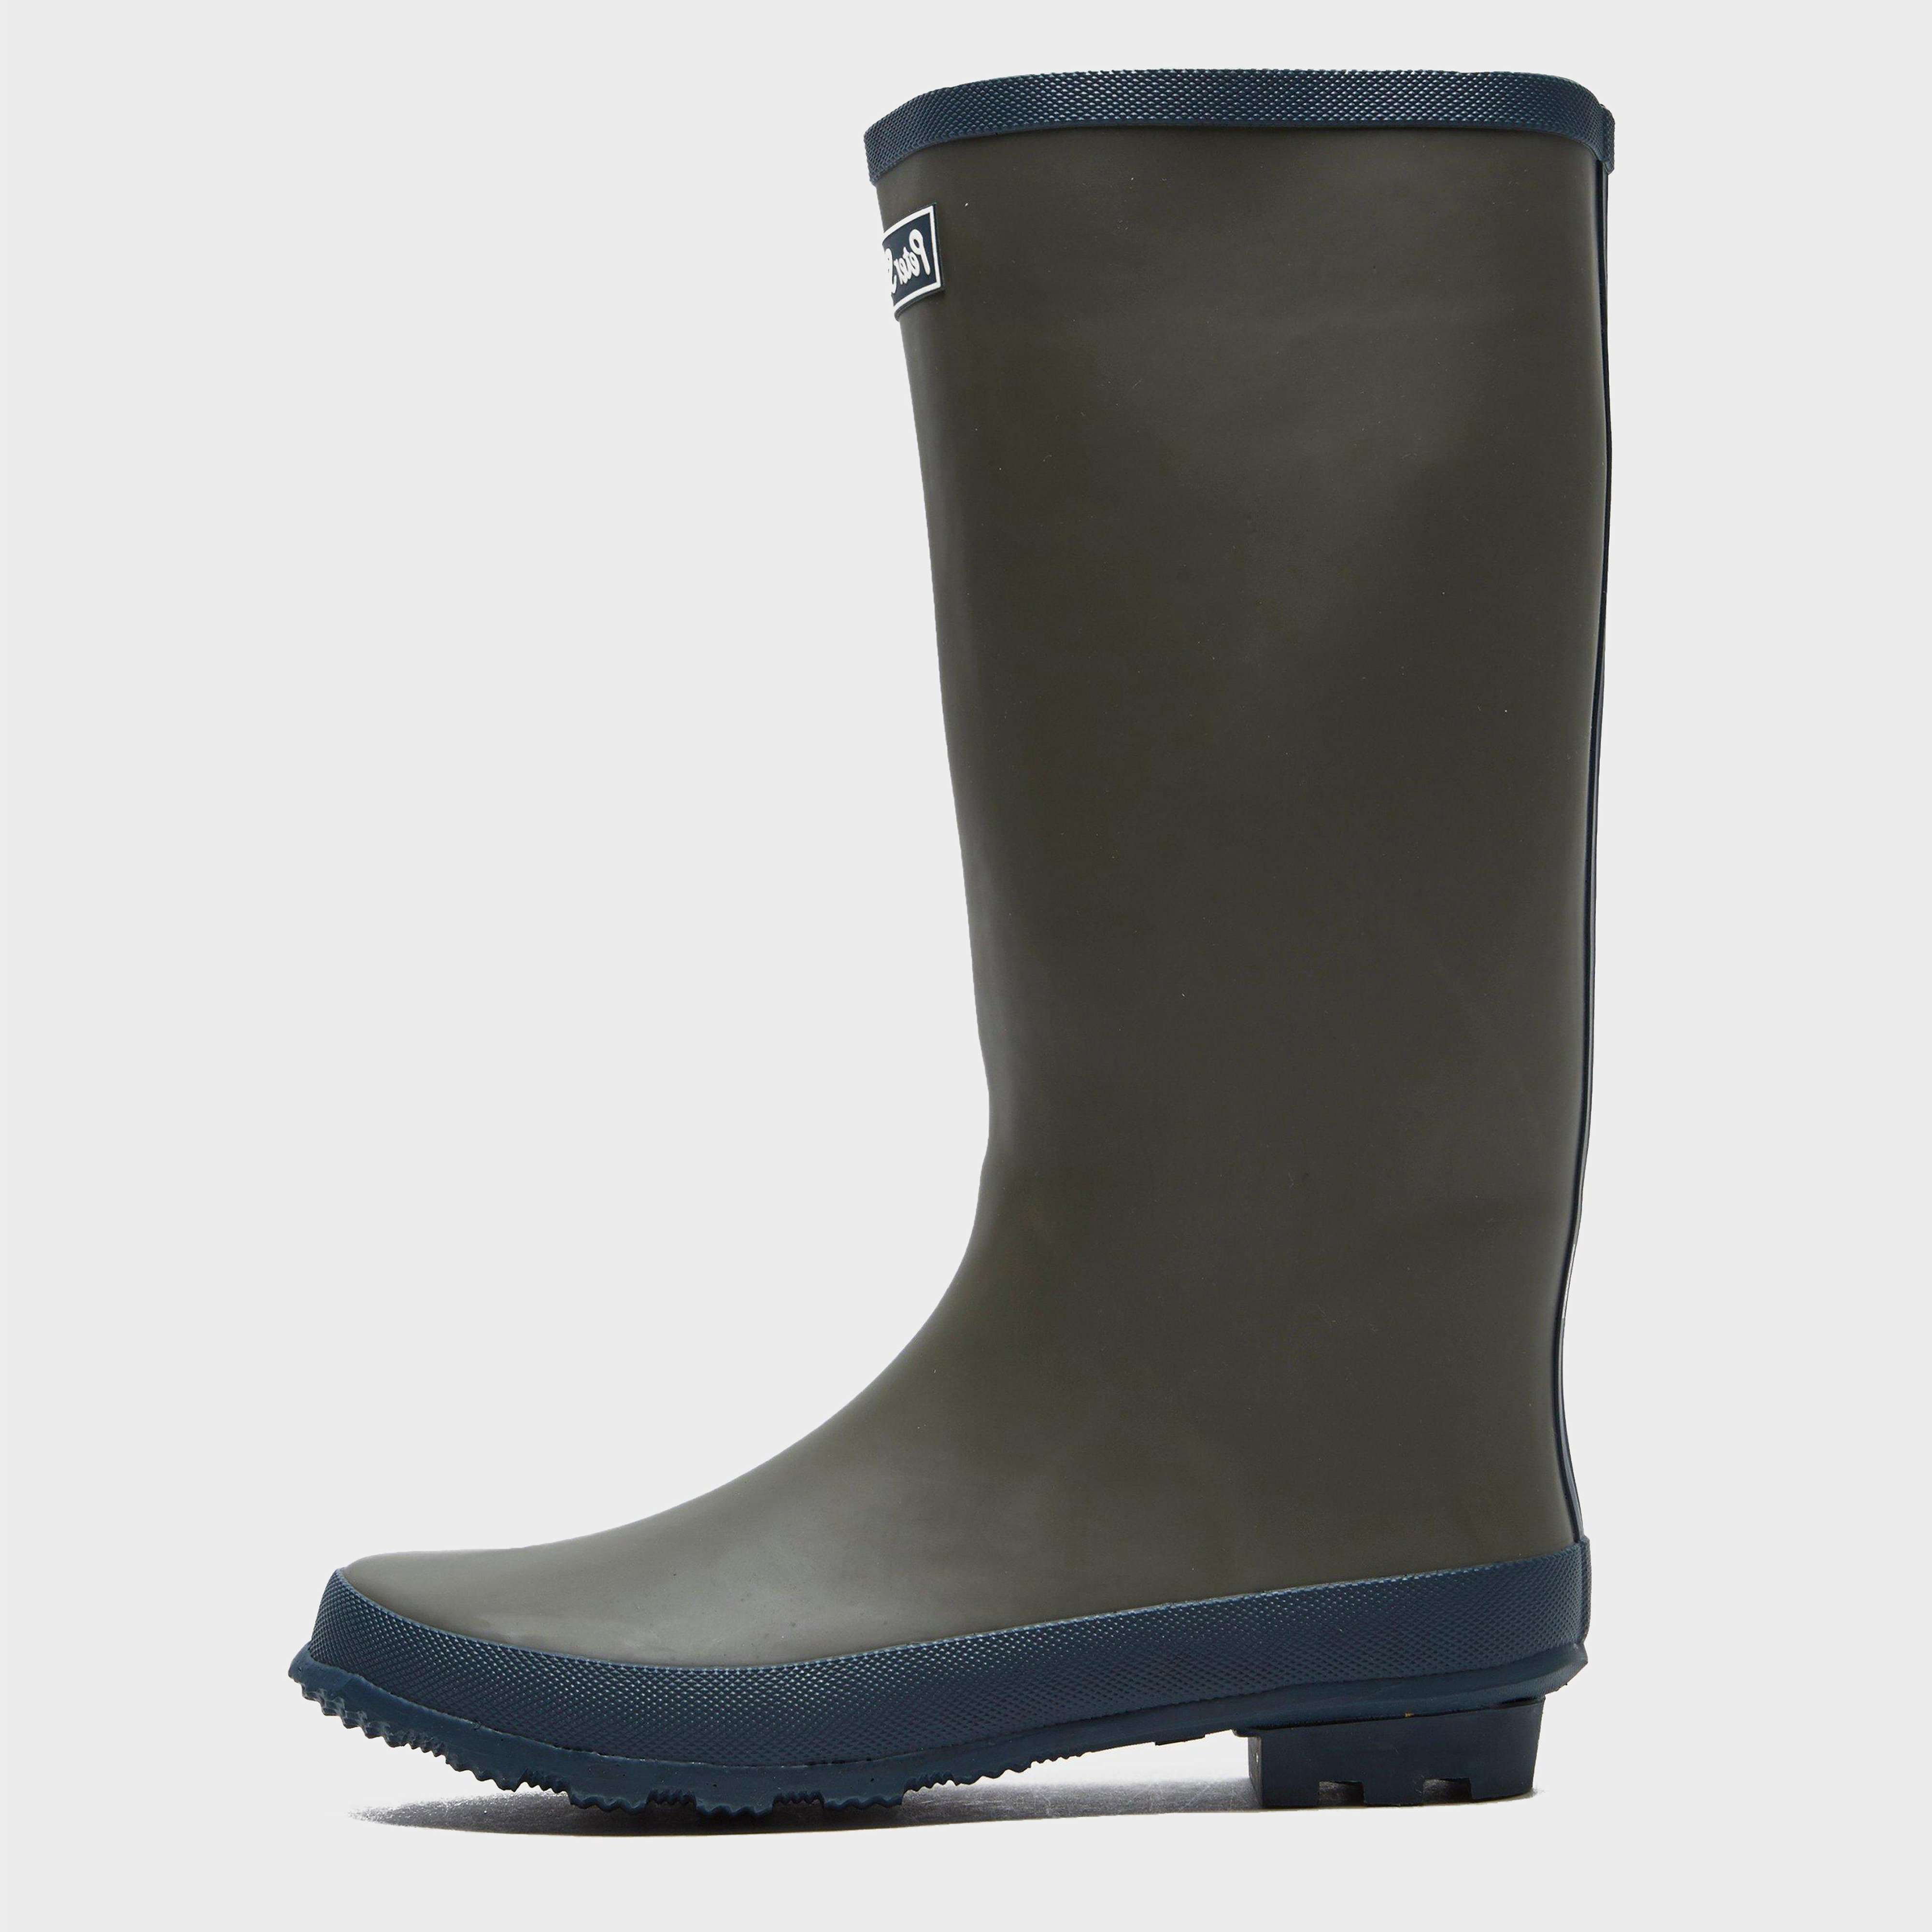 PETER STORM Men's Trim Wellies